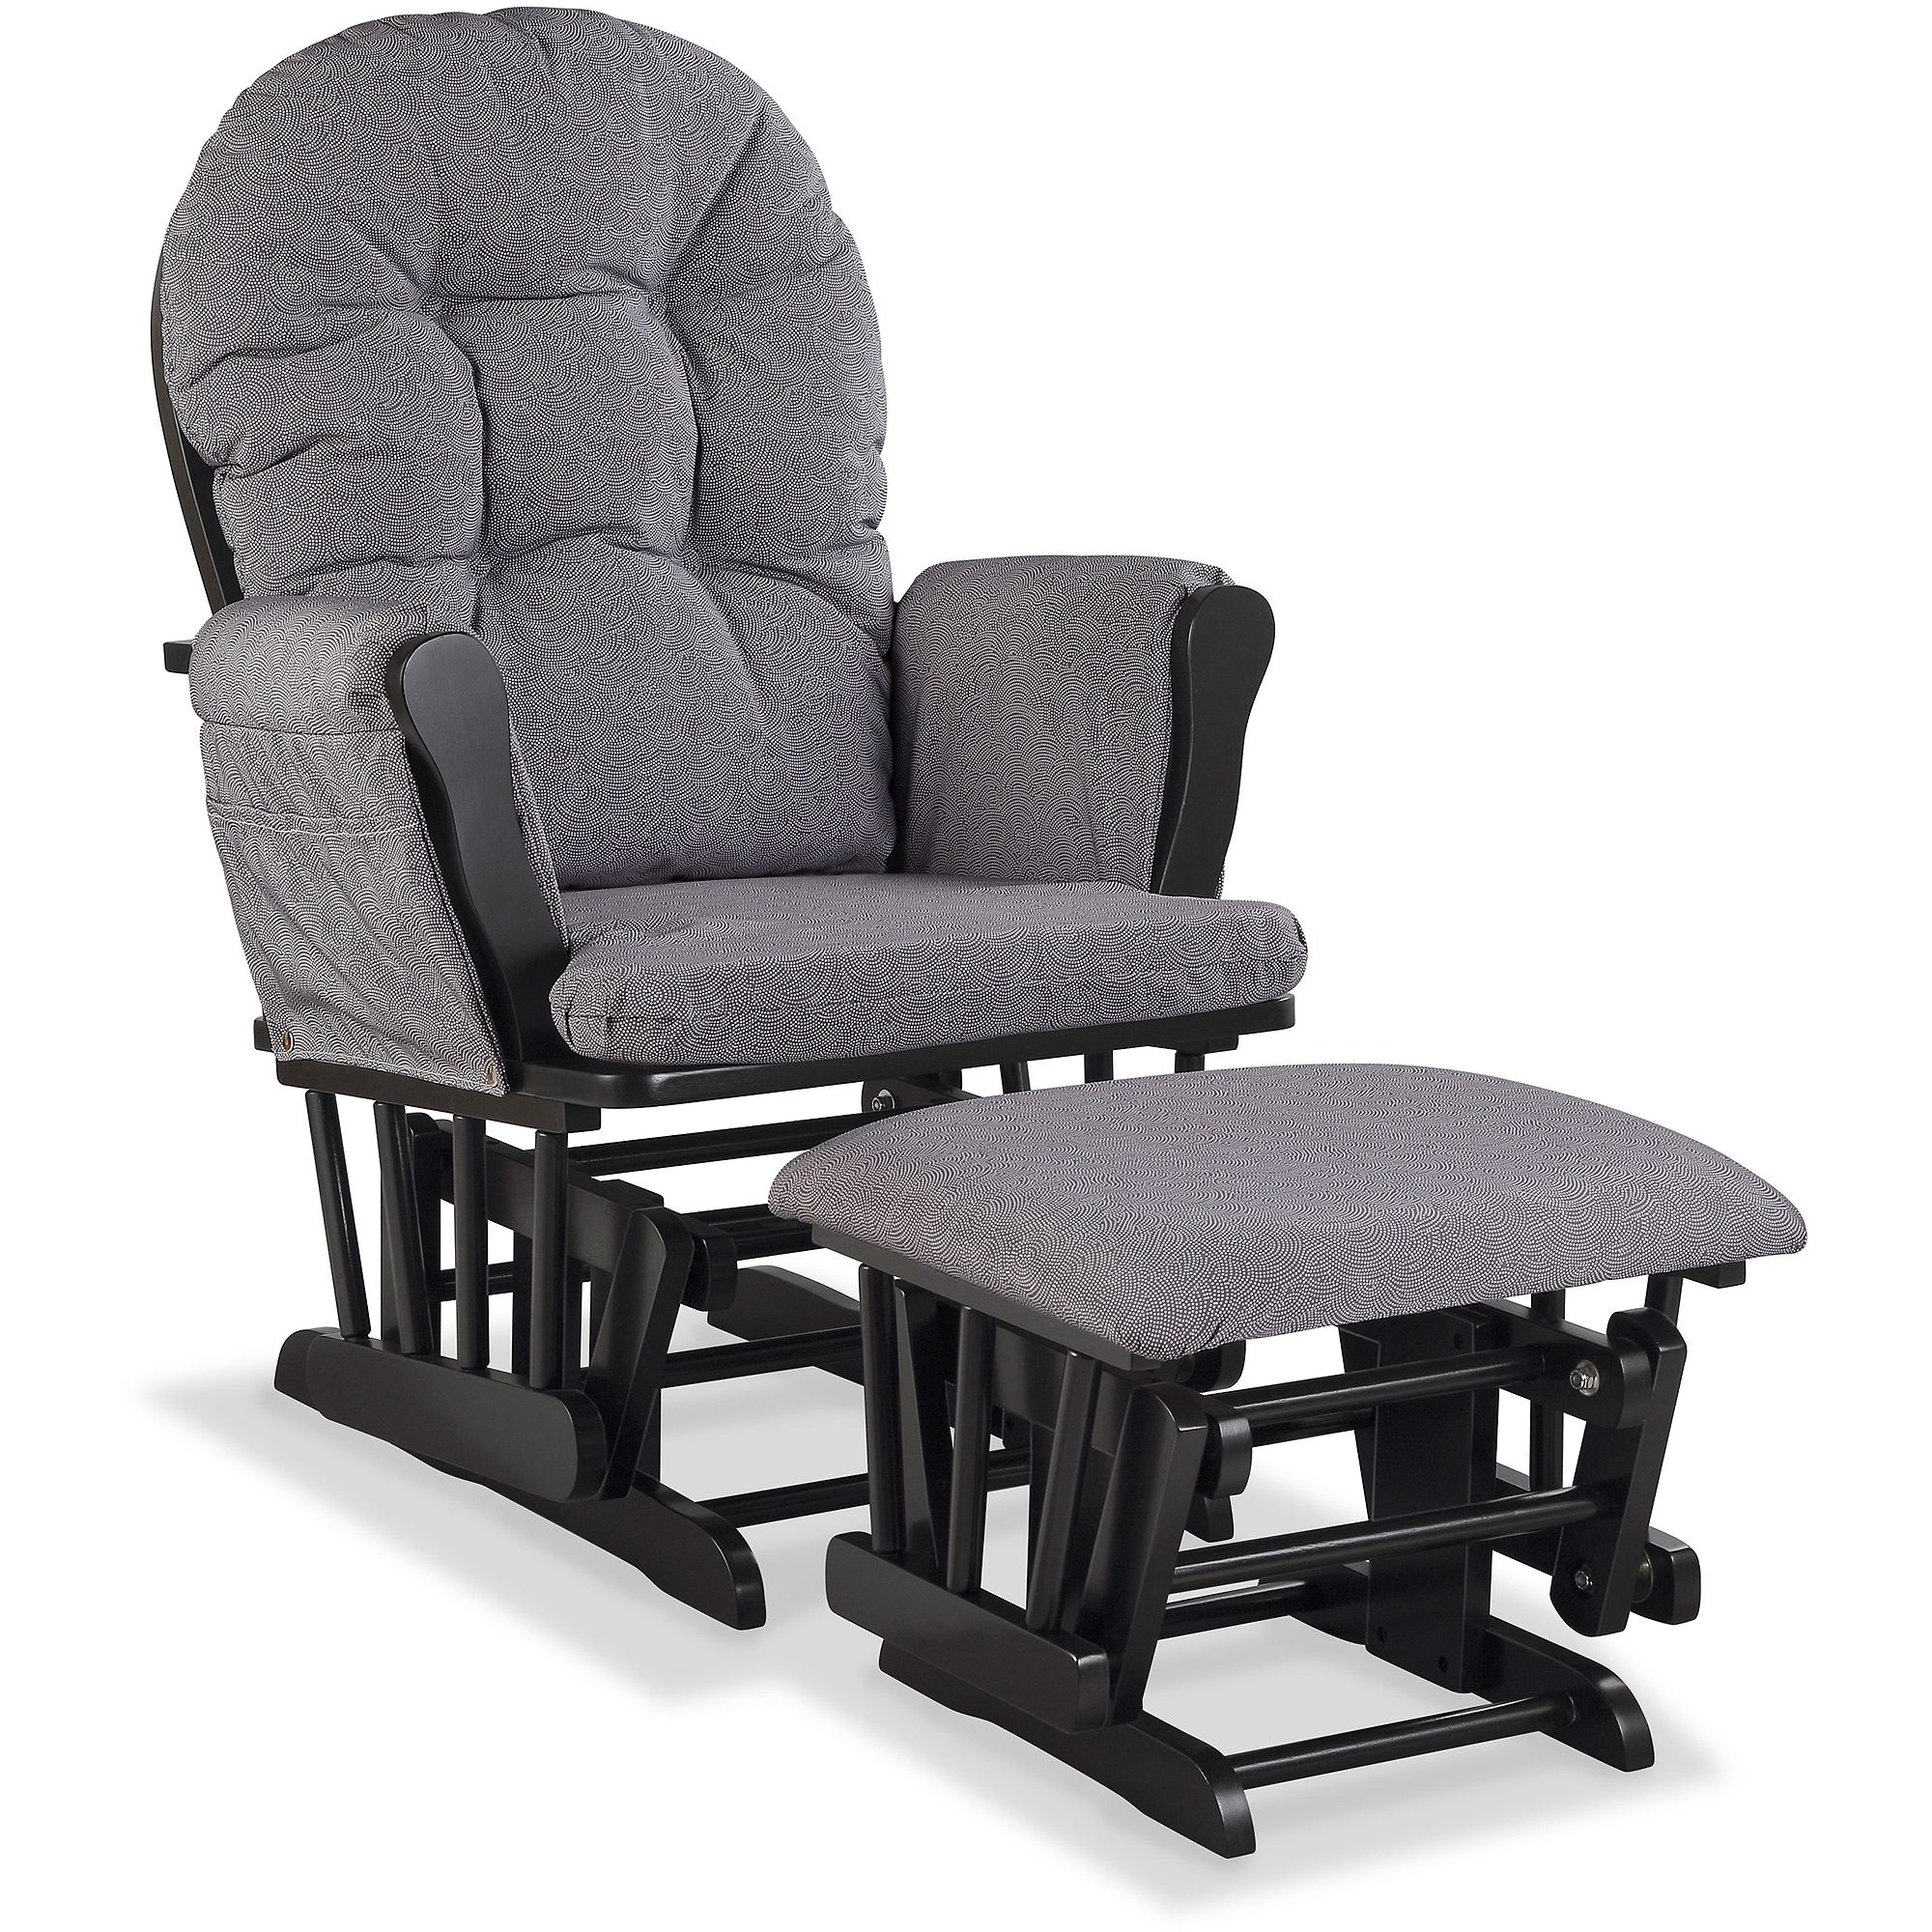 Storkcraft Hoop Custom Glider and Ottoman, Slate Gray Swirl Cushions, (Choose your Finish)